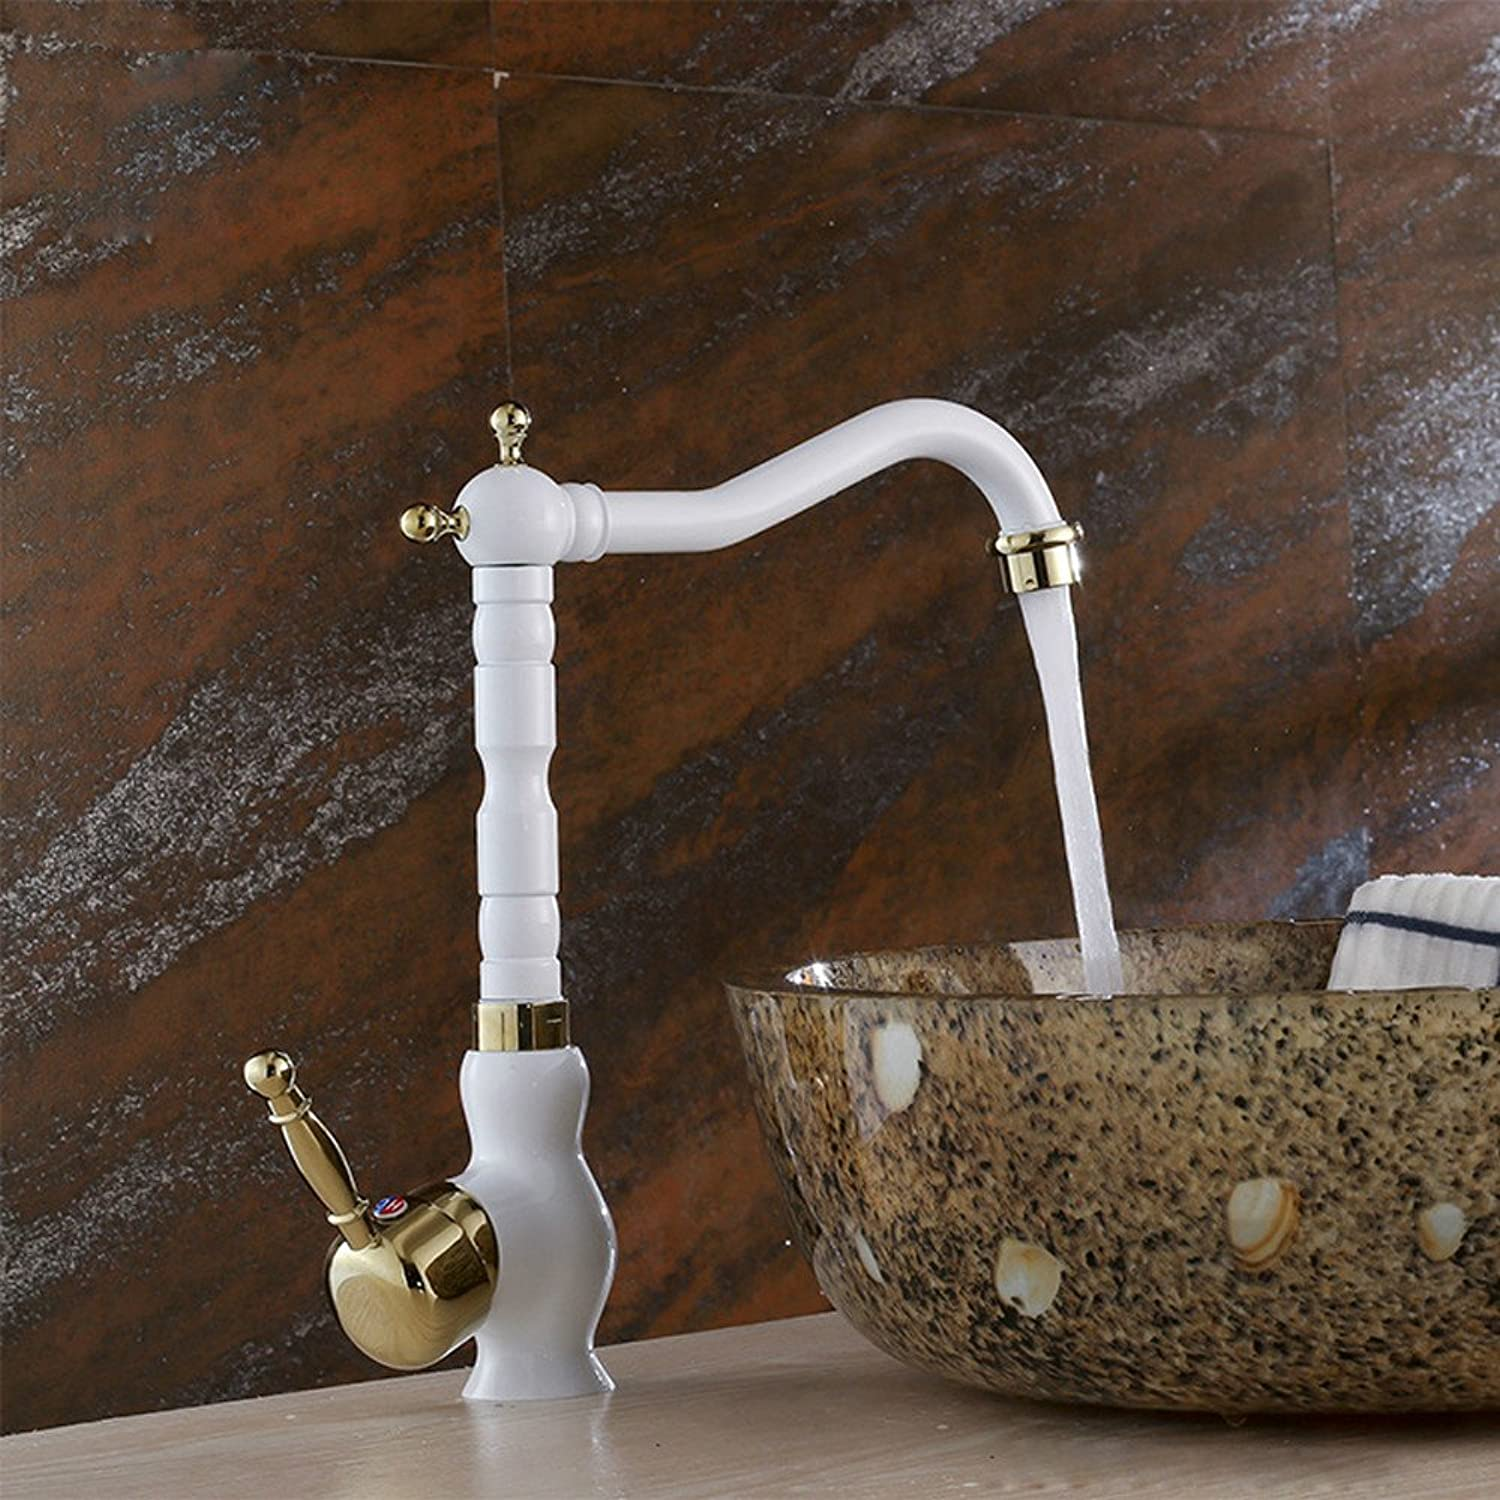 Commercial Single Lever Pull Down Kitchen Sink Faucet Brass Constructed Polished Full Copper Body Kitchen Faucet Porcelain White gold Kitchen Hot and Cold Sink Faucet Sink Dual Purpose